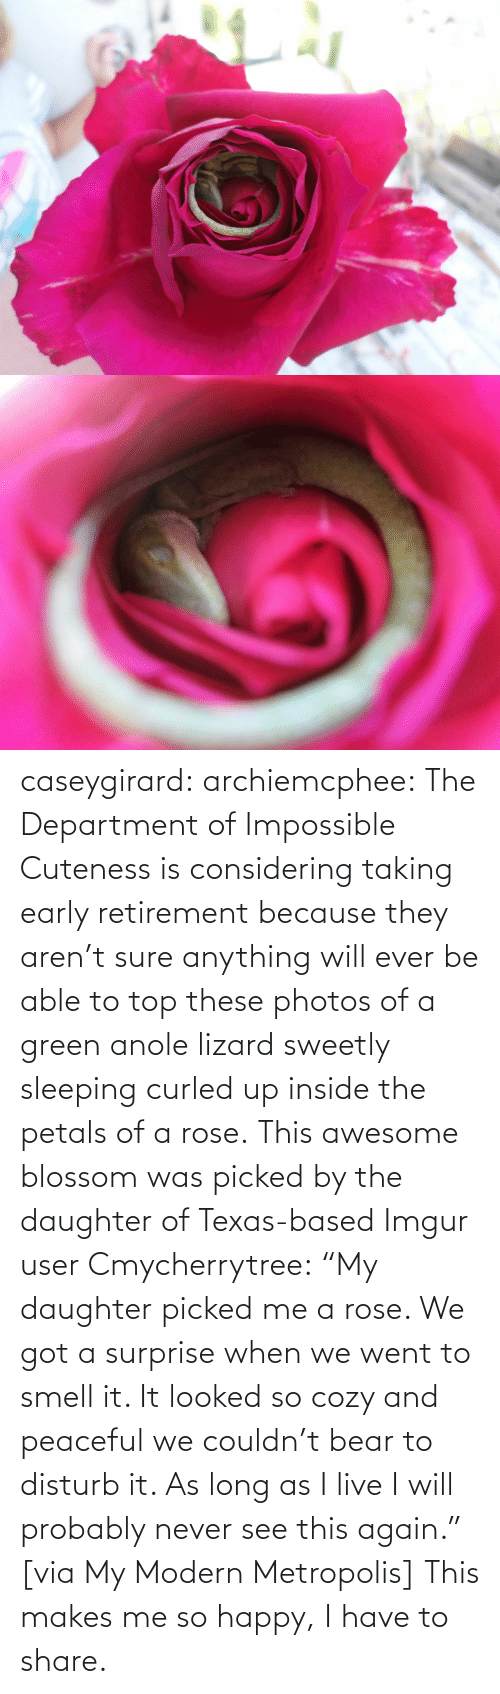 "Able: caseygirard:  archiemcphee:   The Department of Impossible Cuteness is considering taking early retirement because they aren't sure anything will ever be able to top these photos of a green anole lizard sweetly sleeping curled up inside the petals of a rose. This awesome blossom was picked by the daughter of Texas-based Imgur user Cmycherrytree: ""My daughter picked me a rose. We got a surprise when we went to smell it. It looked so cozy and peaceful we couldn't bear to disturb it. As long as I live I will probably never see this again."" [via My Modern Metropolis]   This makes me so happy, I have to share."